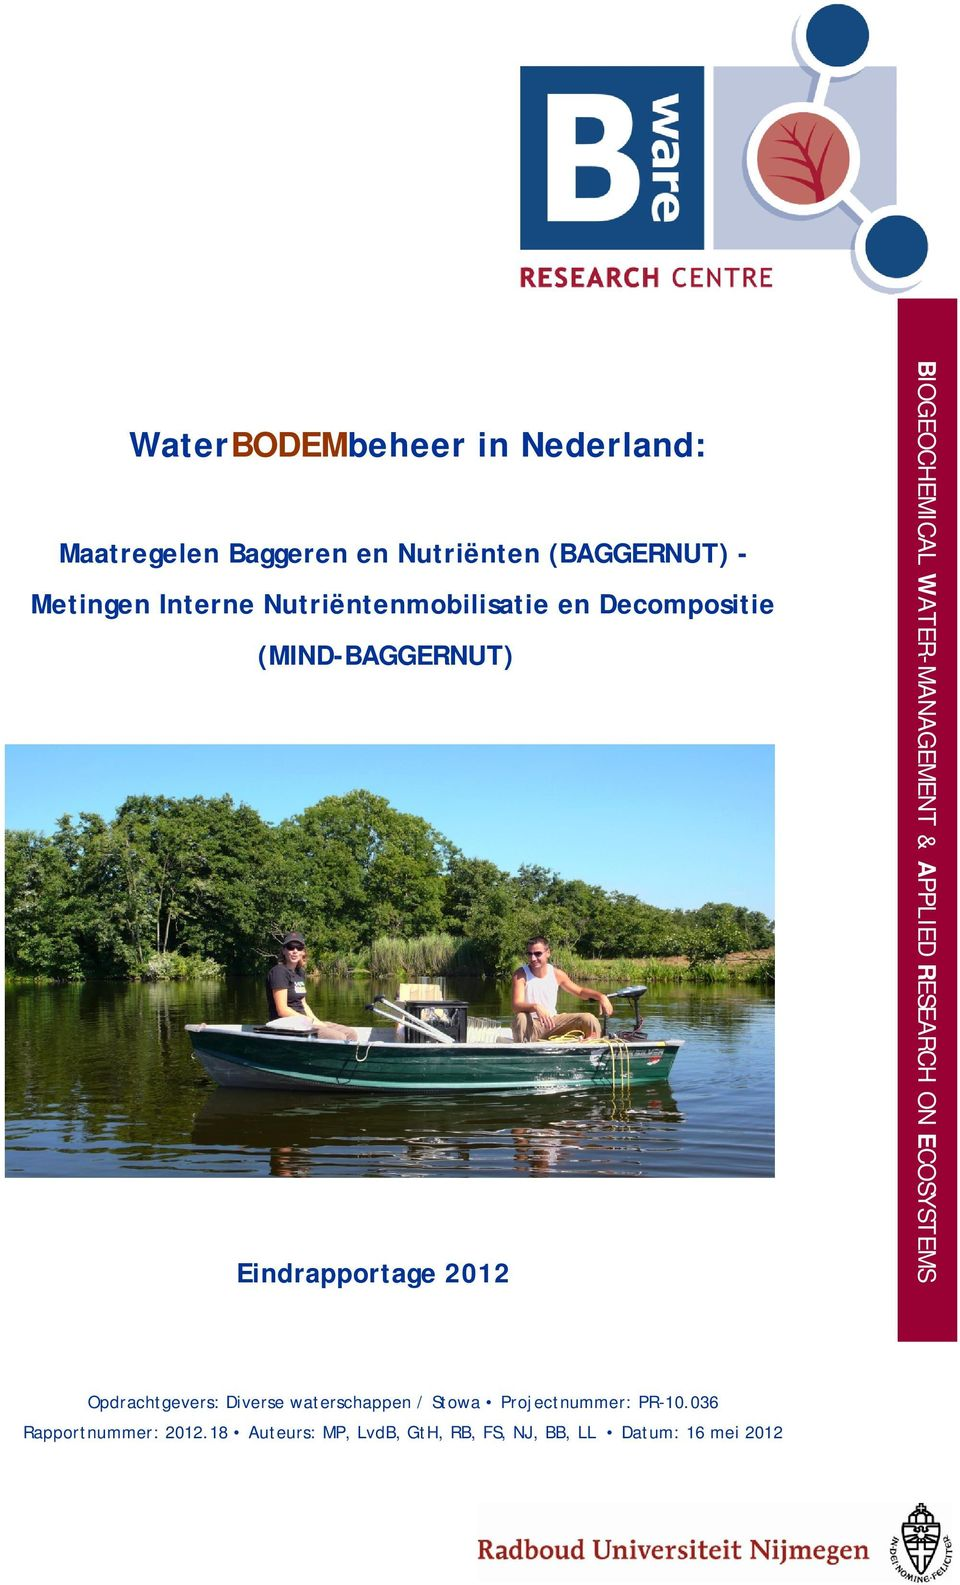 WATER-MANAGEMENT & APPLIED RESEARCH ON ECOSYSTEMS Opdrachtgevers: Diverse waterschappen / Stowa